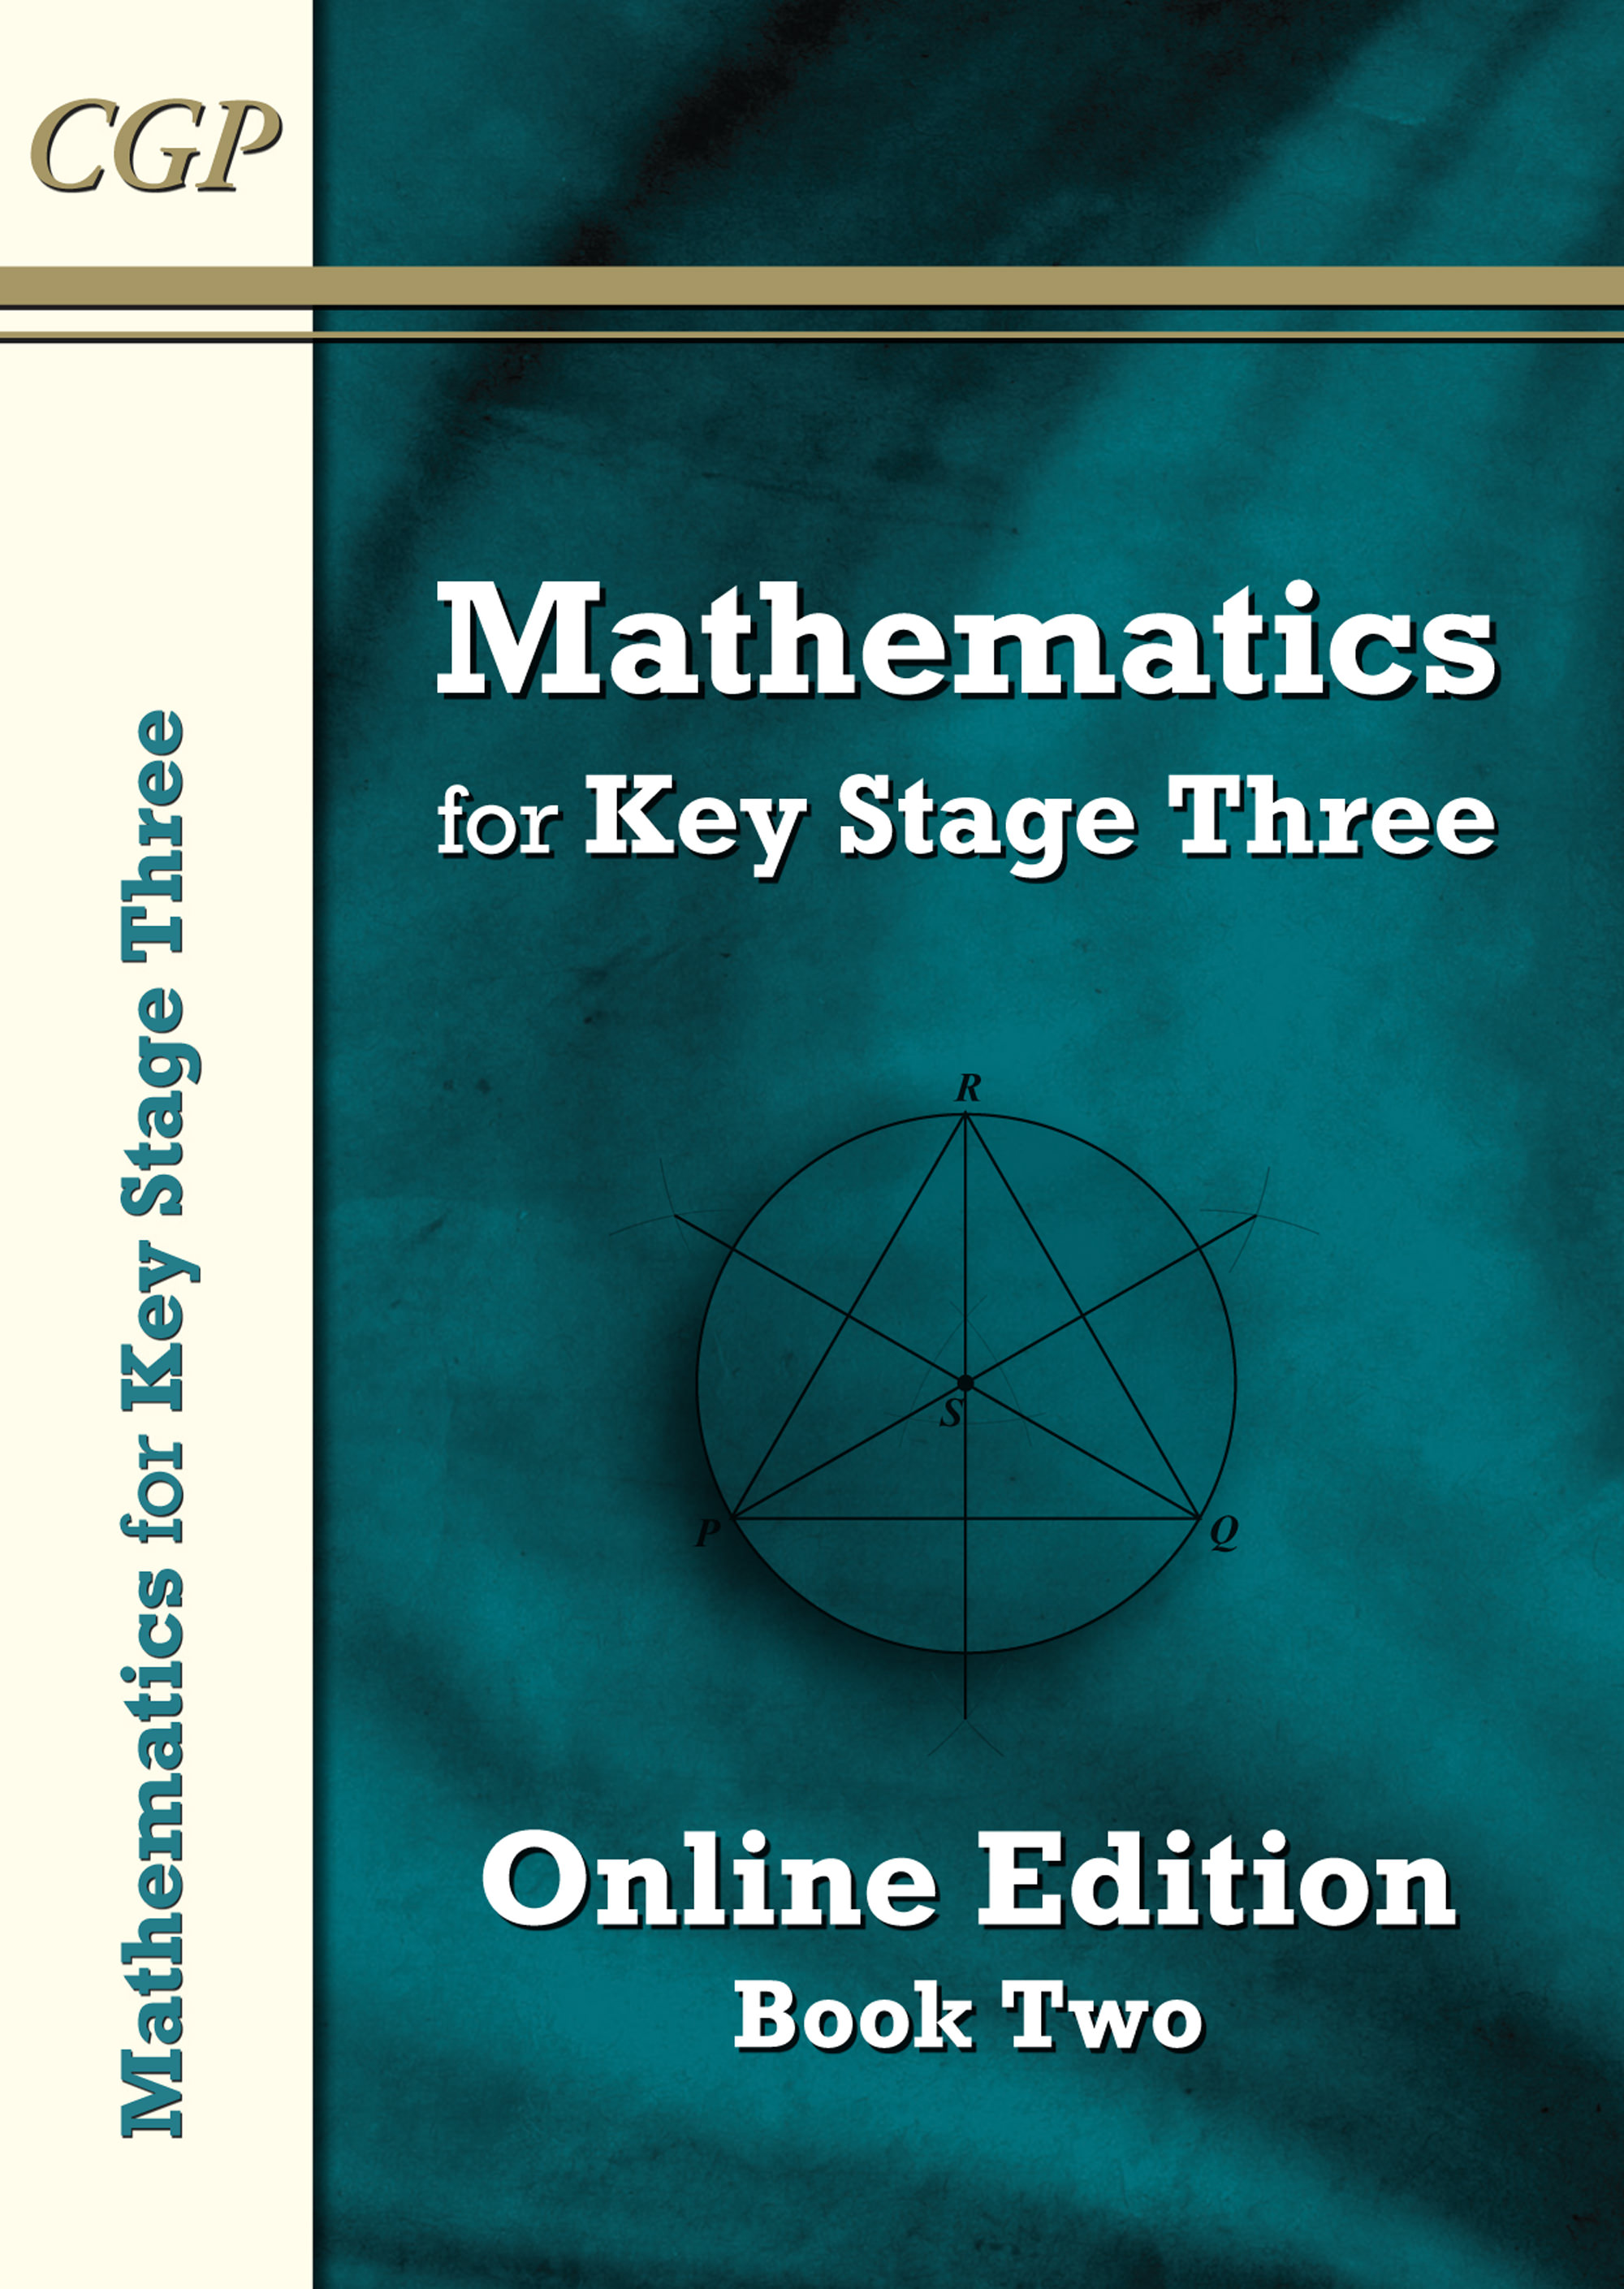 M2NN31D - KS3 Maths Textbook 2: Student Online Edition (without answers)